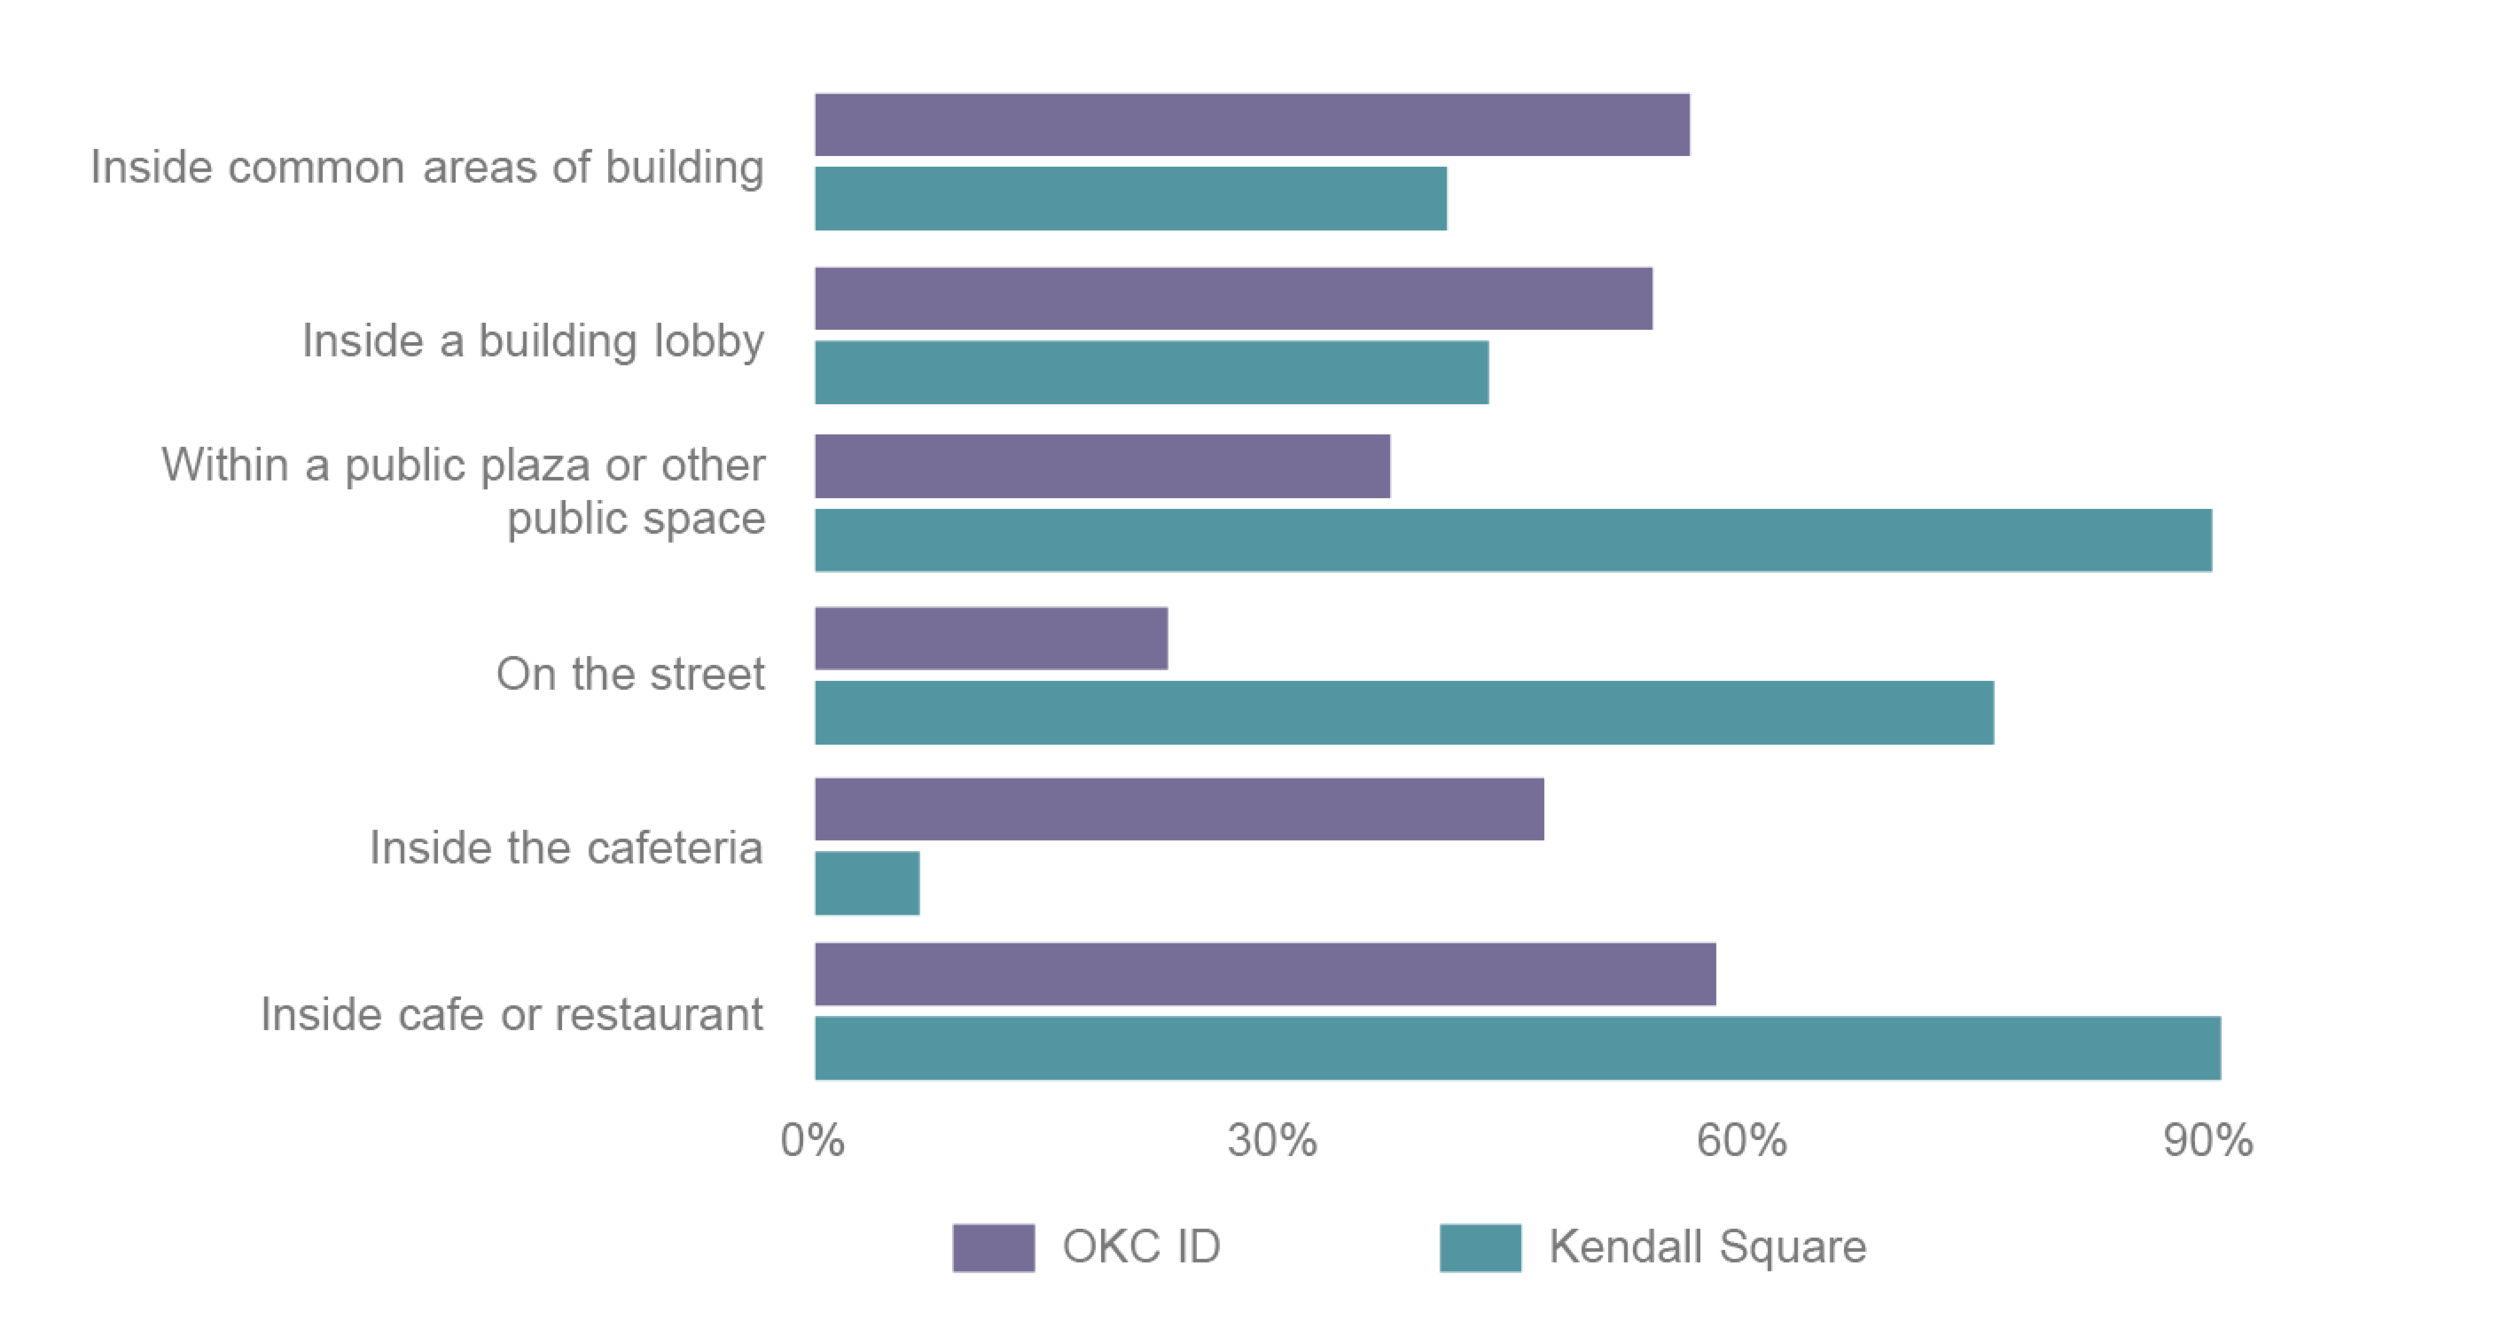 Source: Brookings Institute  OKLAHOMA CITY INNOVATION DISTRICT: ECOSYSTEM AUDIT